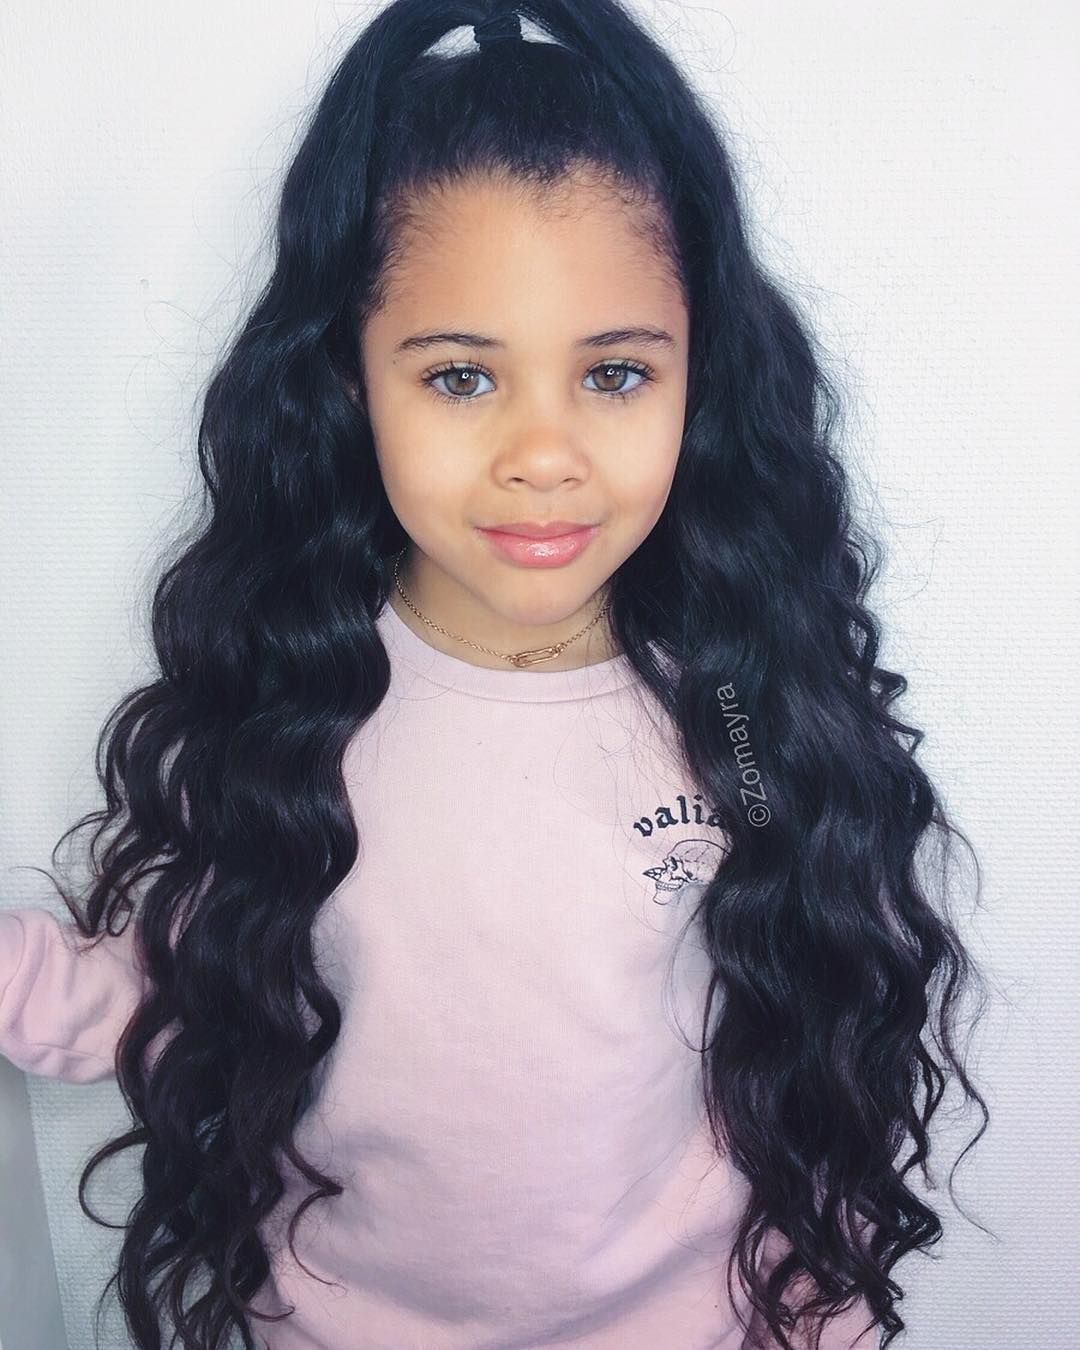 13.7k Likes, 109 Comments - Beautiful Mixed Kids ...